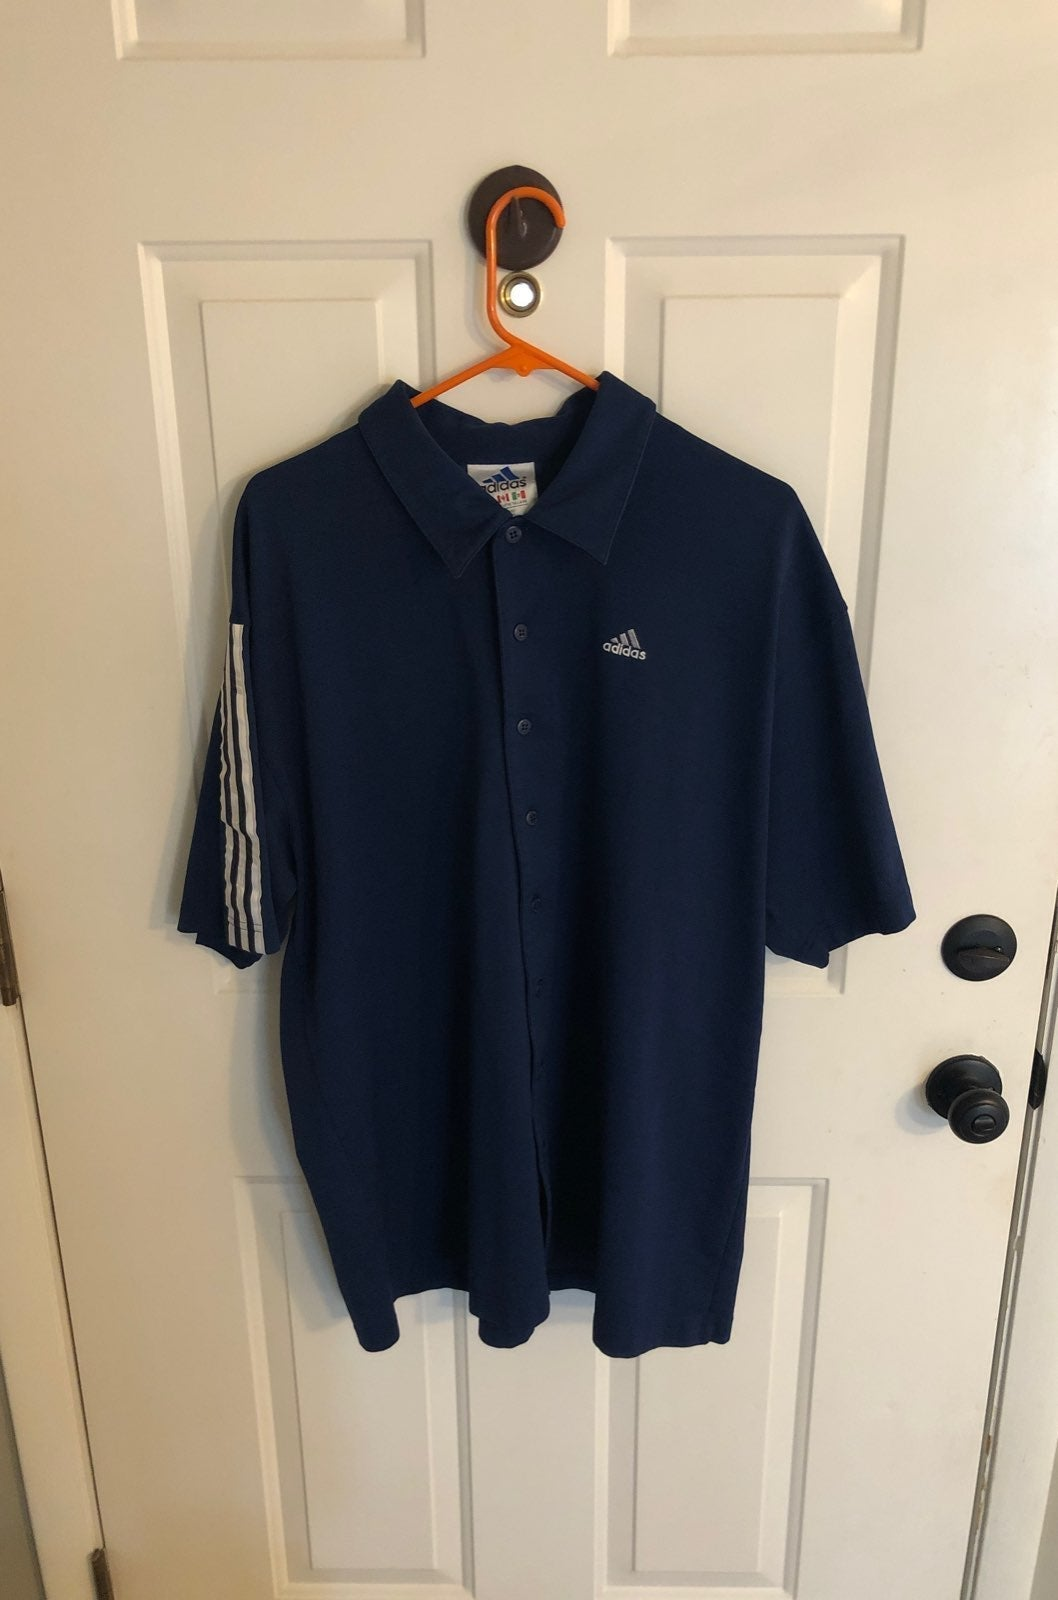 Vintage adidas button up